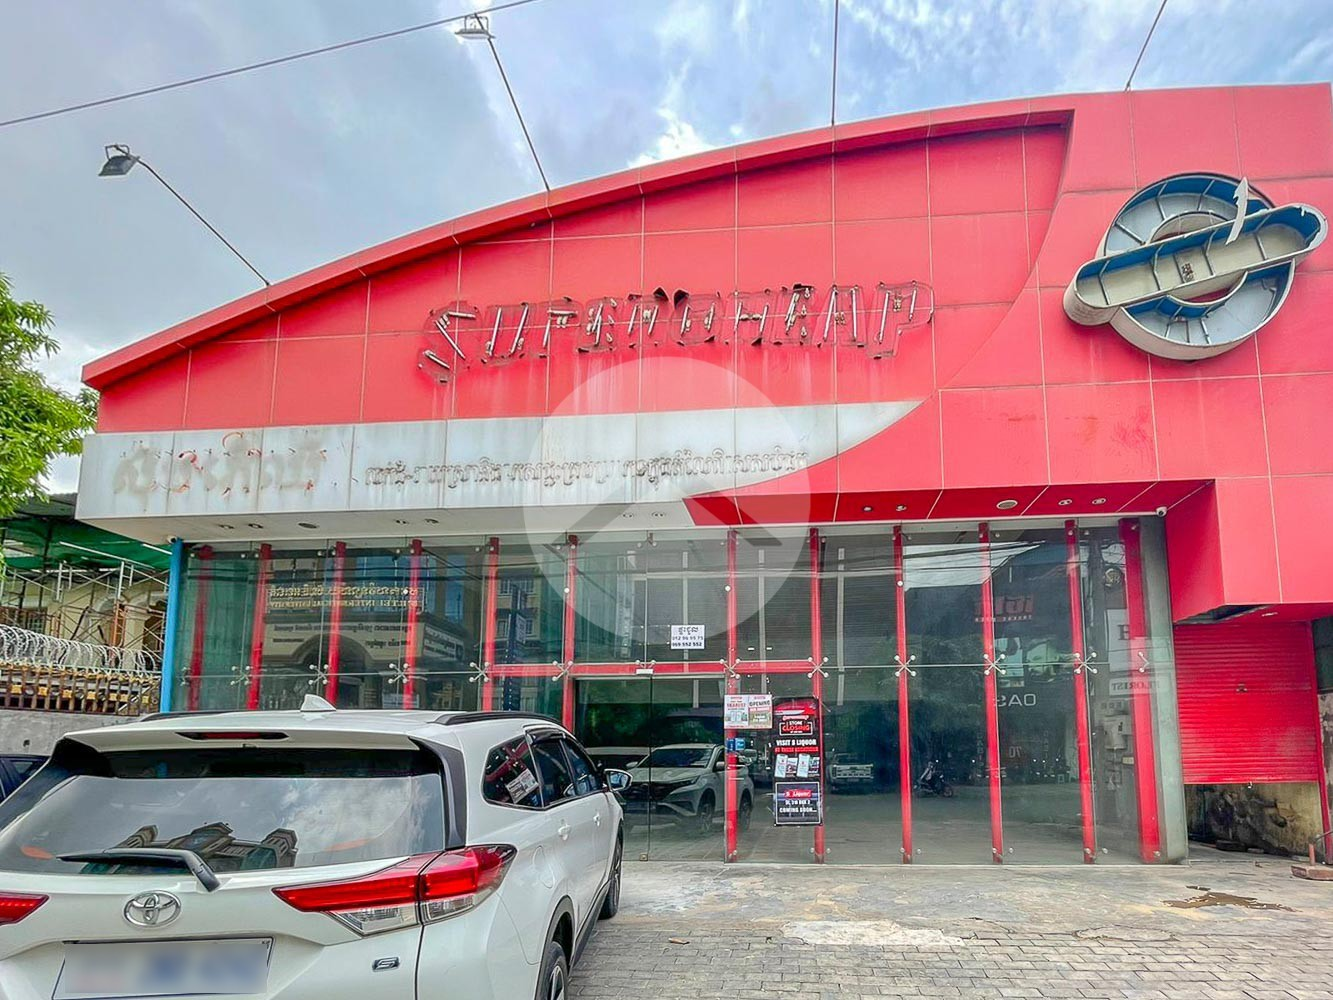 351 Sqm Retail Space For Rent - Beoung Keng Kong, Phnom Penh